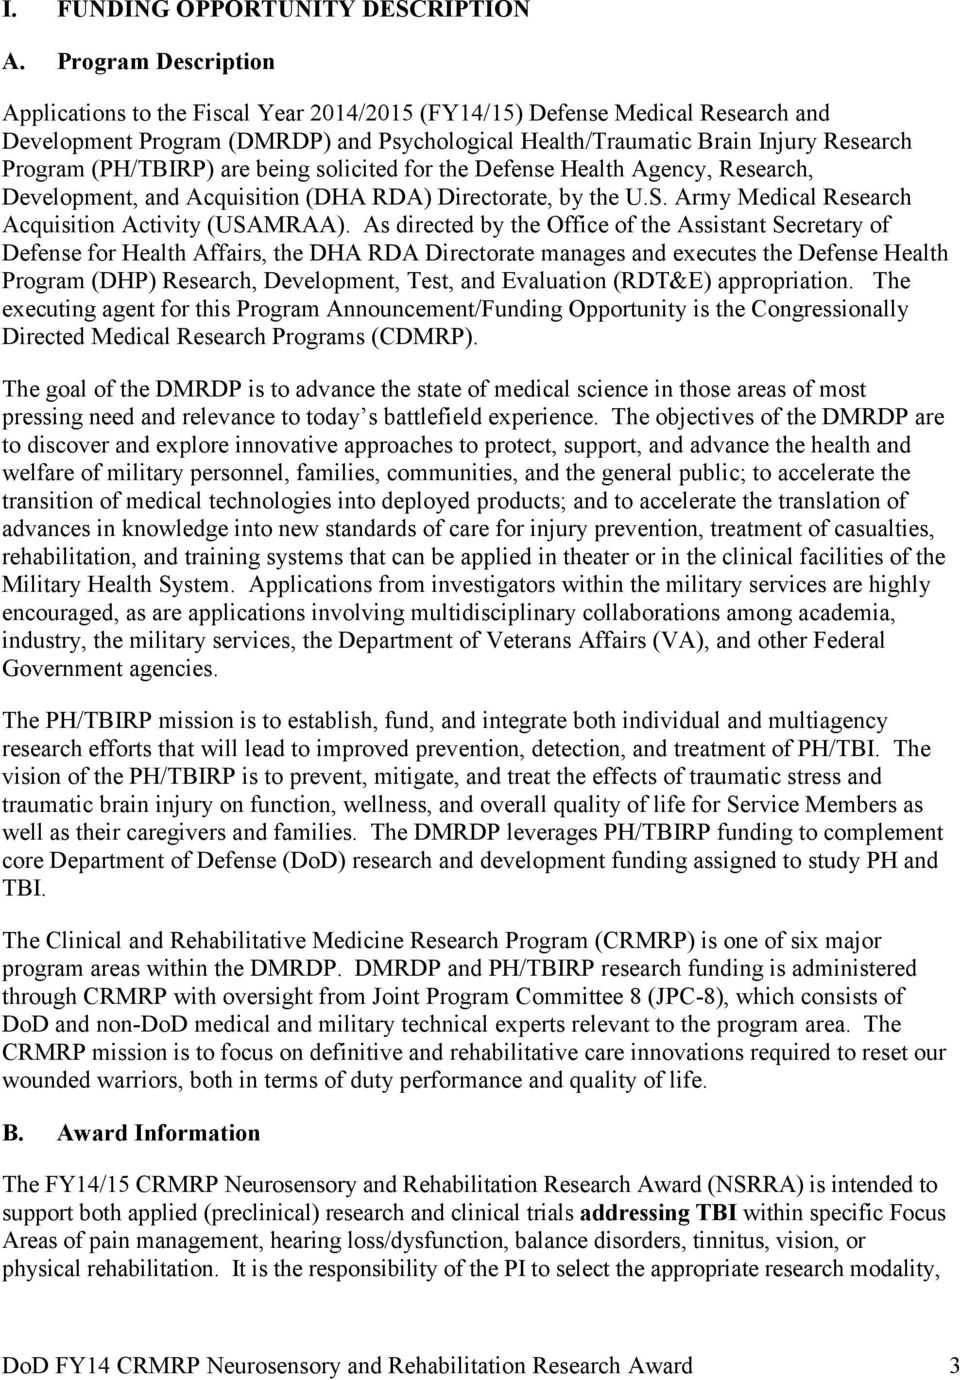 (PH/TBIRP) are being solicited for the Defense Health Agency, Research, Development, and Acquisition (DHA RDA) Directorate, by the U.S. Army Medical Research Acquisition Activity (USAMRAA).